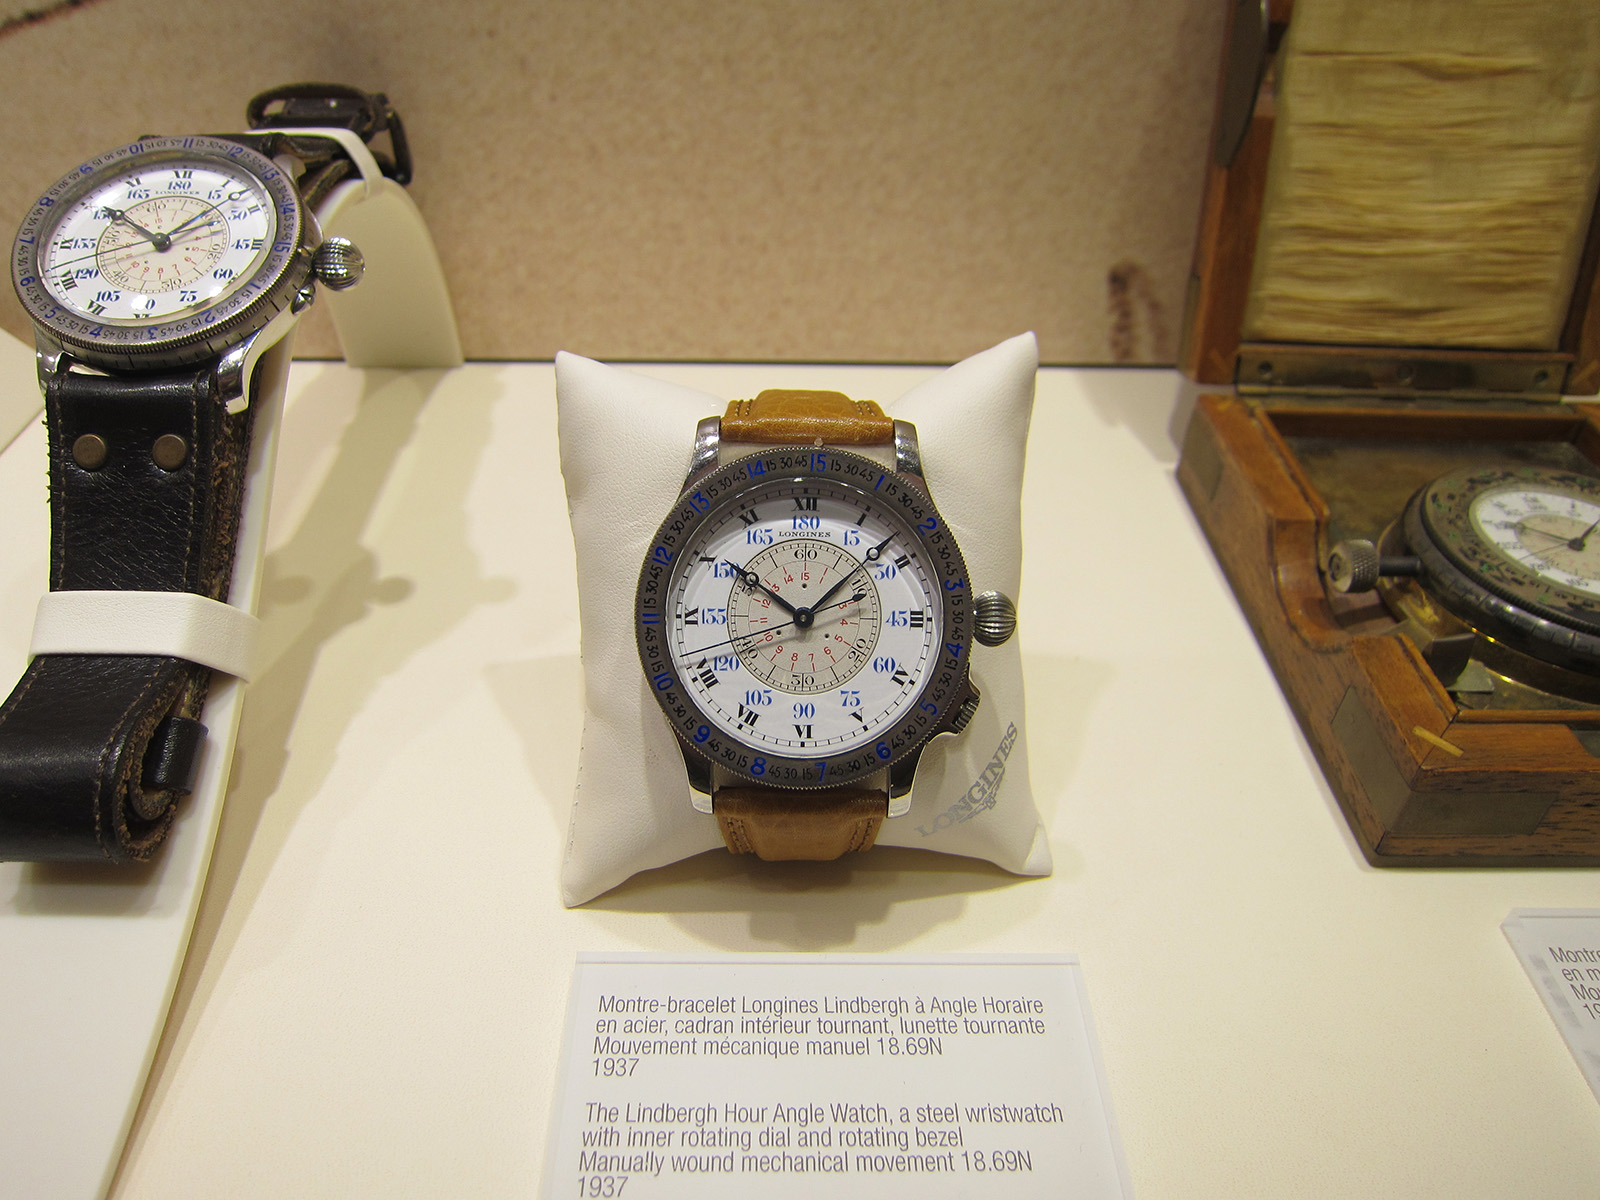 Lindbergh Hour Angle Watch